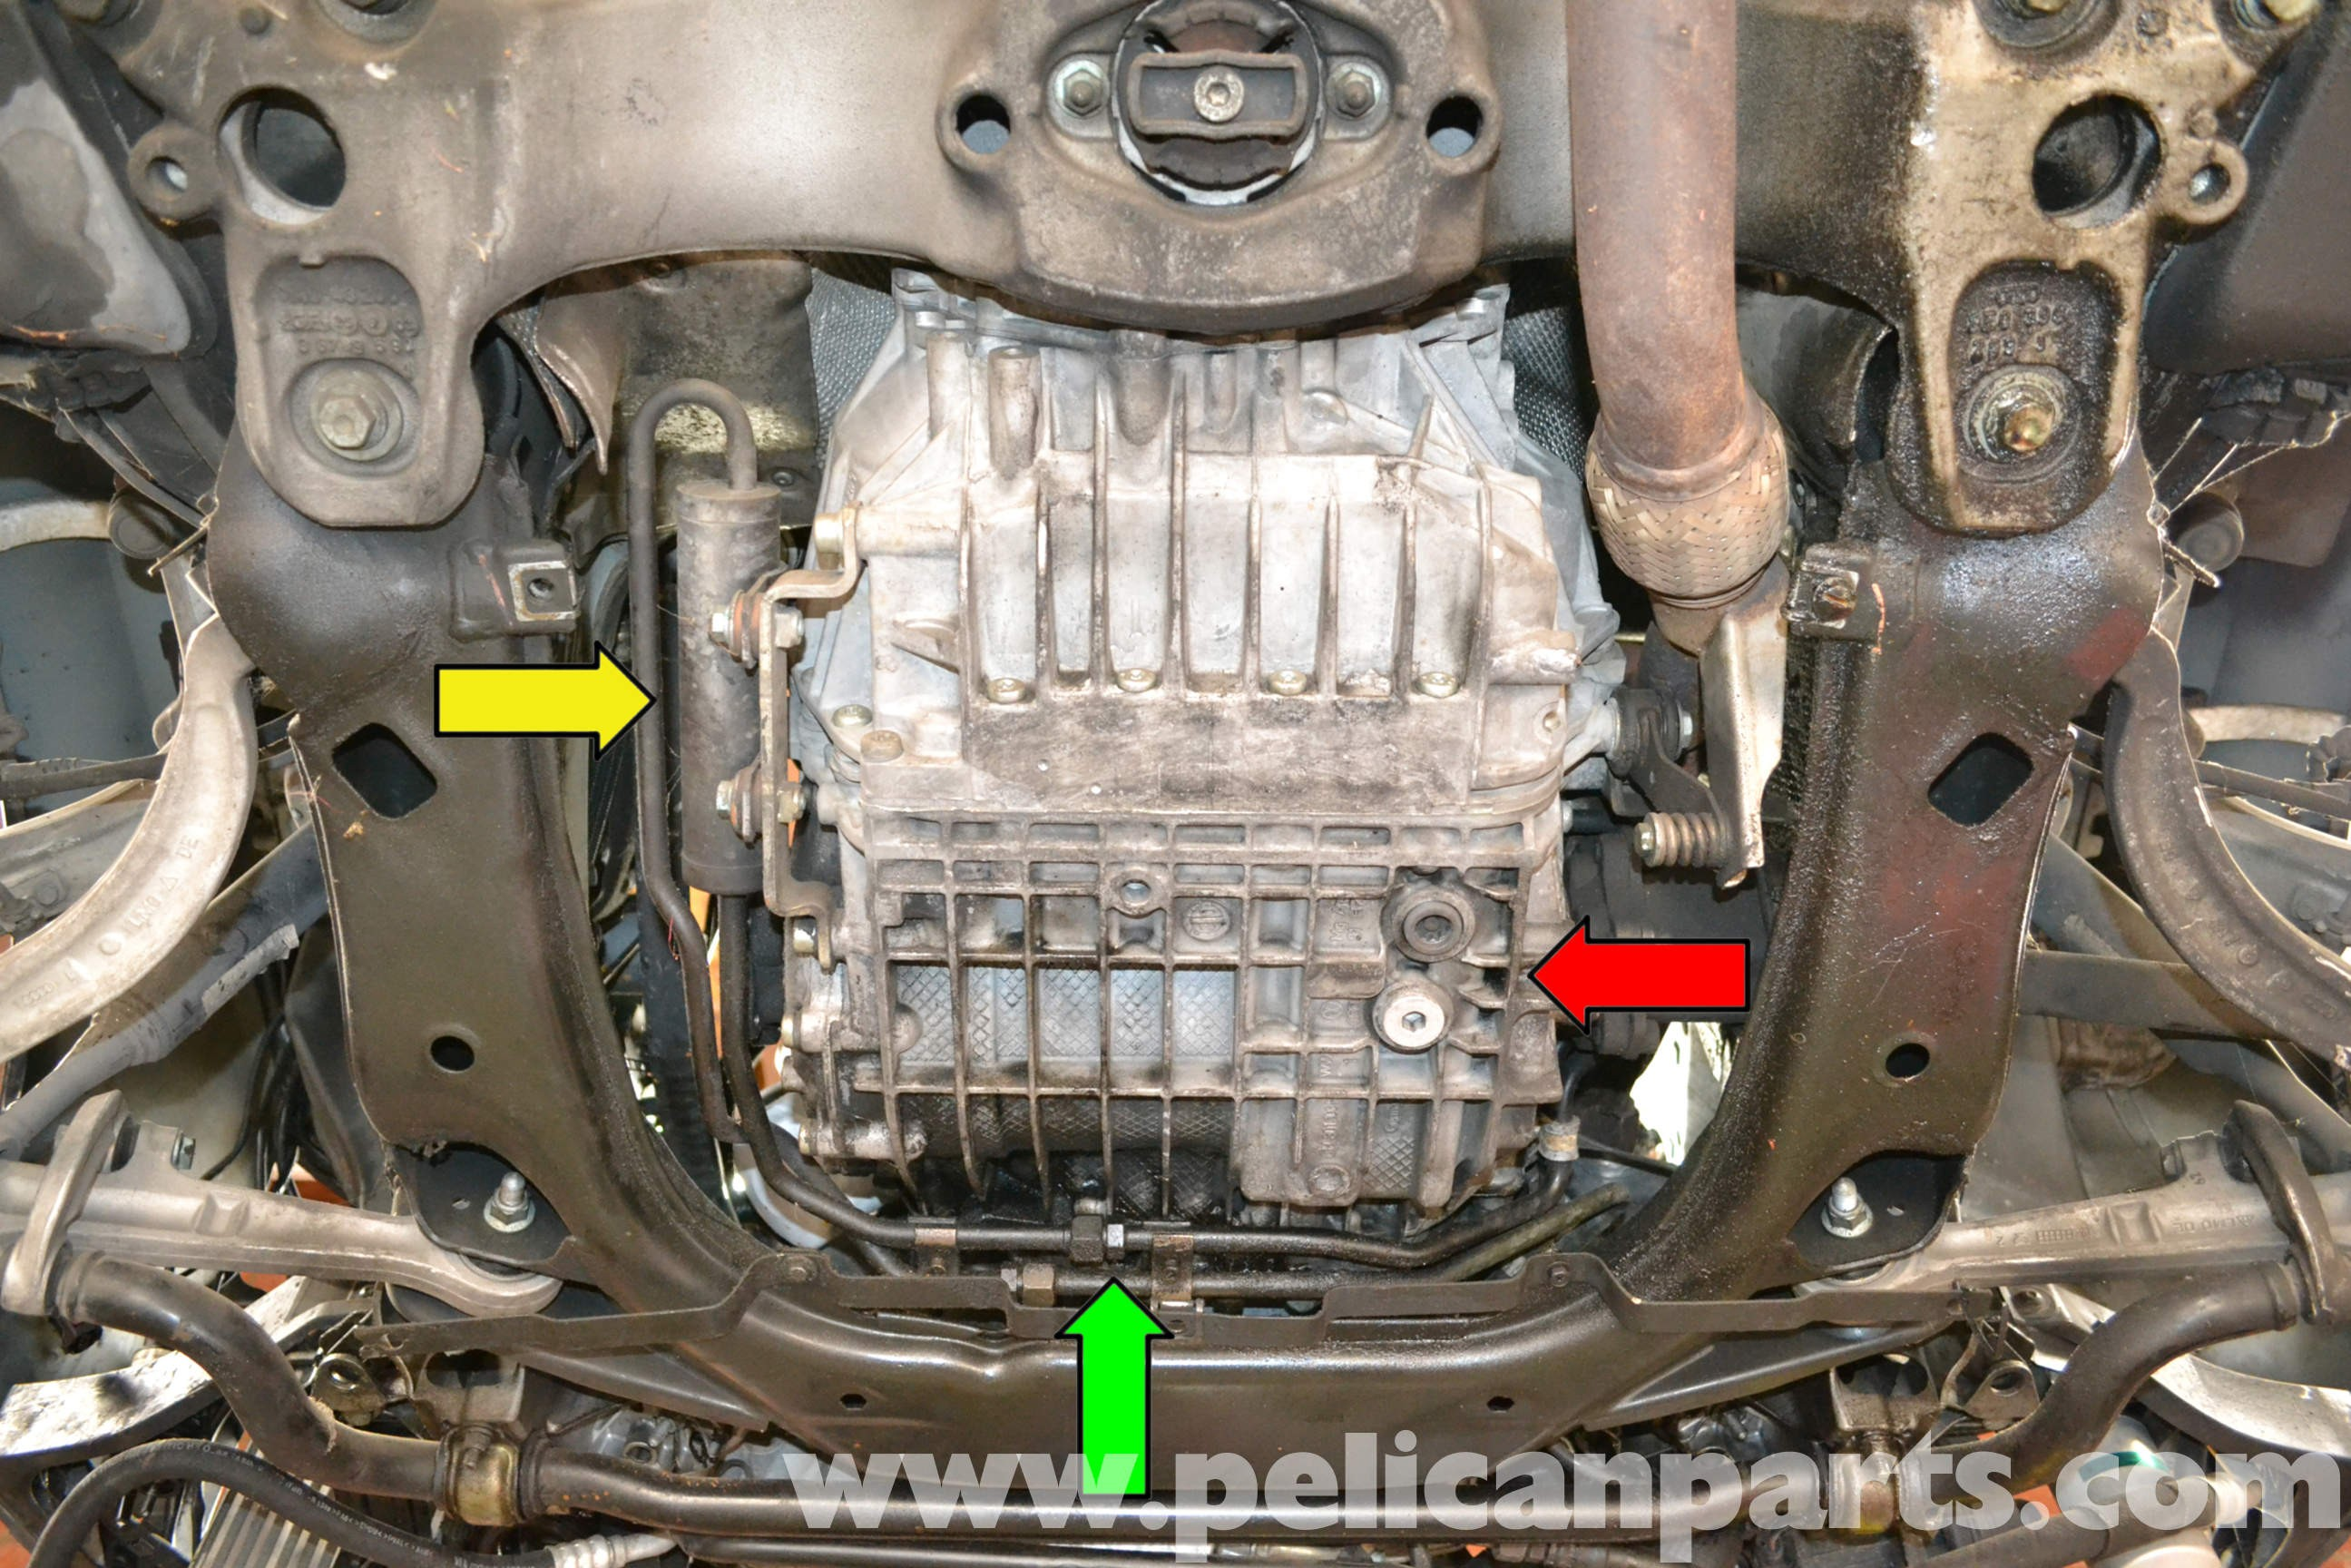 2002 Audi A4 Engine Diagram A4mods The Premiere Modification 2005 B6 Automatic Transmission Fluid And Filter Replacement Of